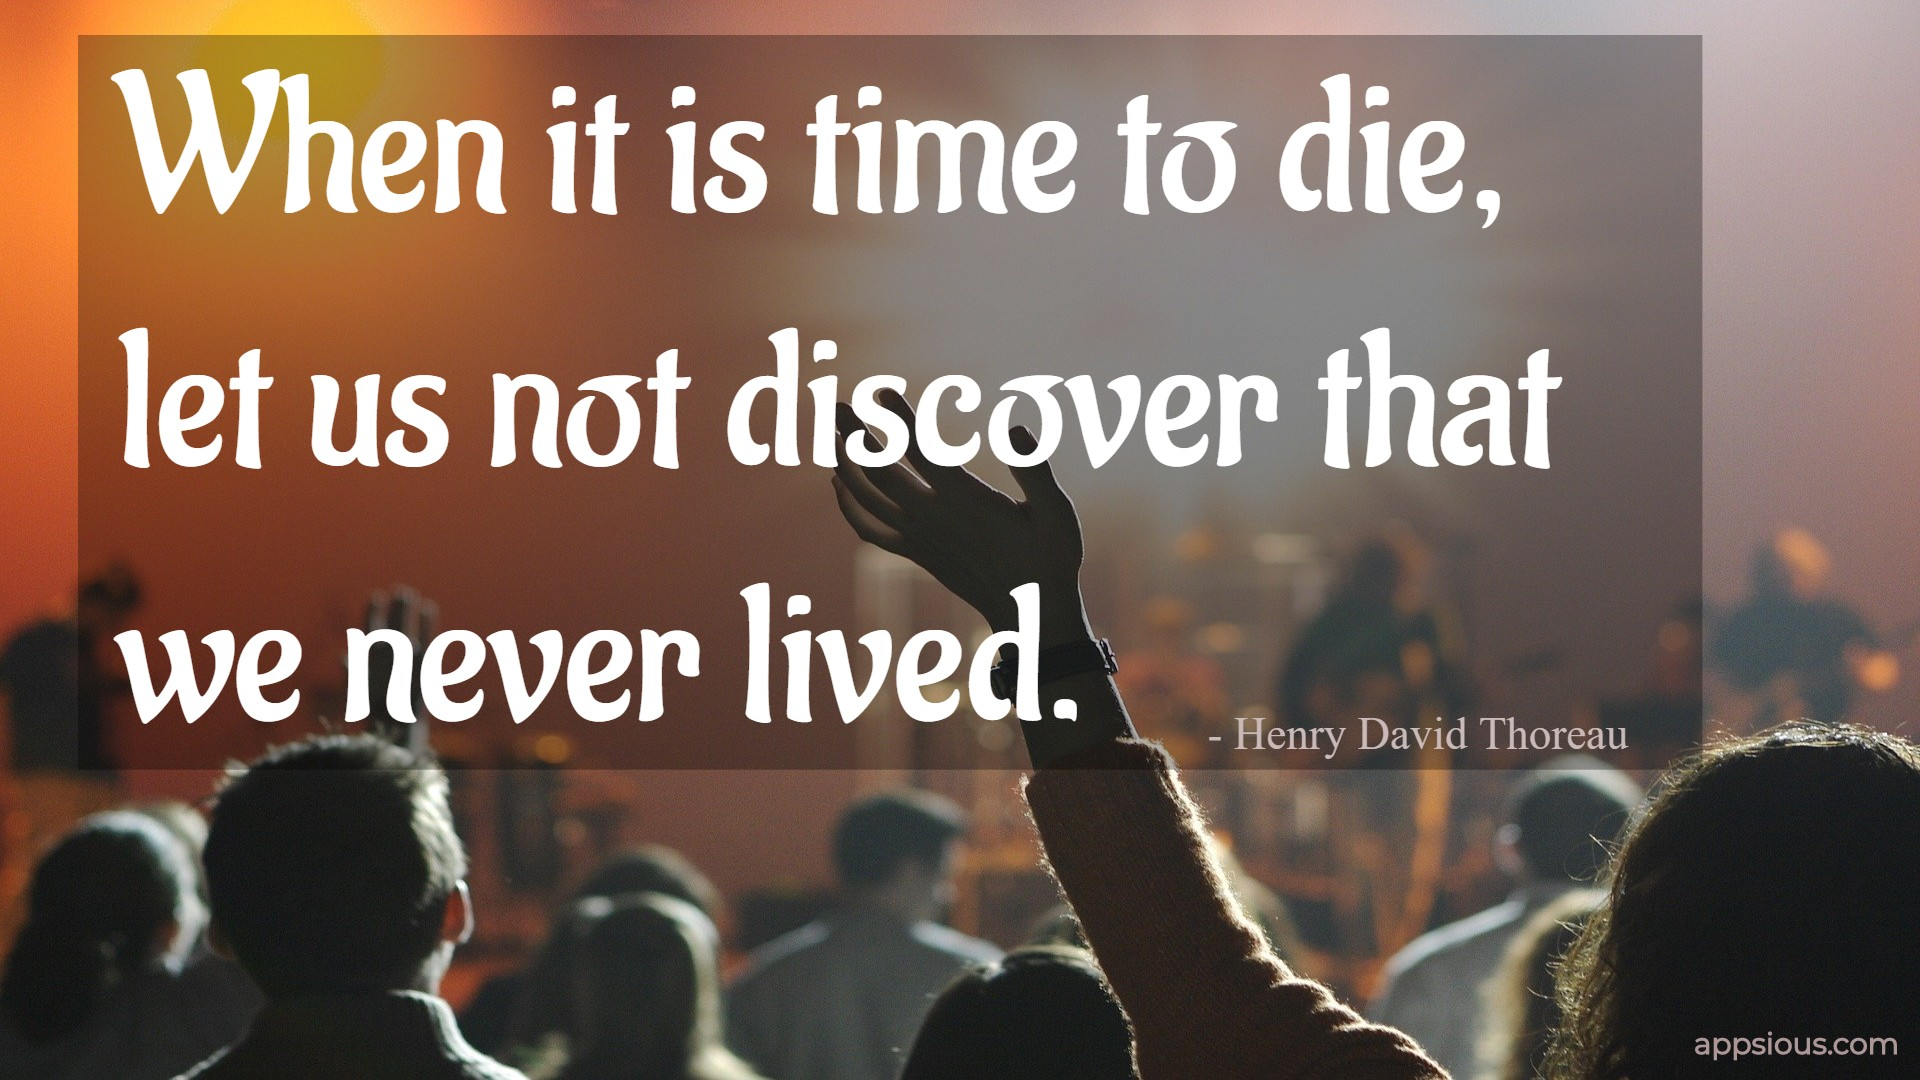 When it is time to die, let us not discover that we never lived.